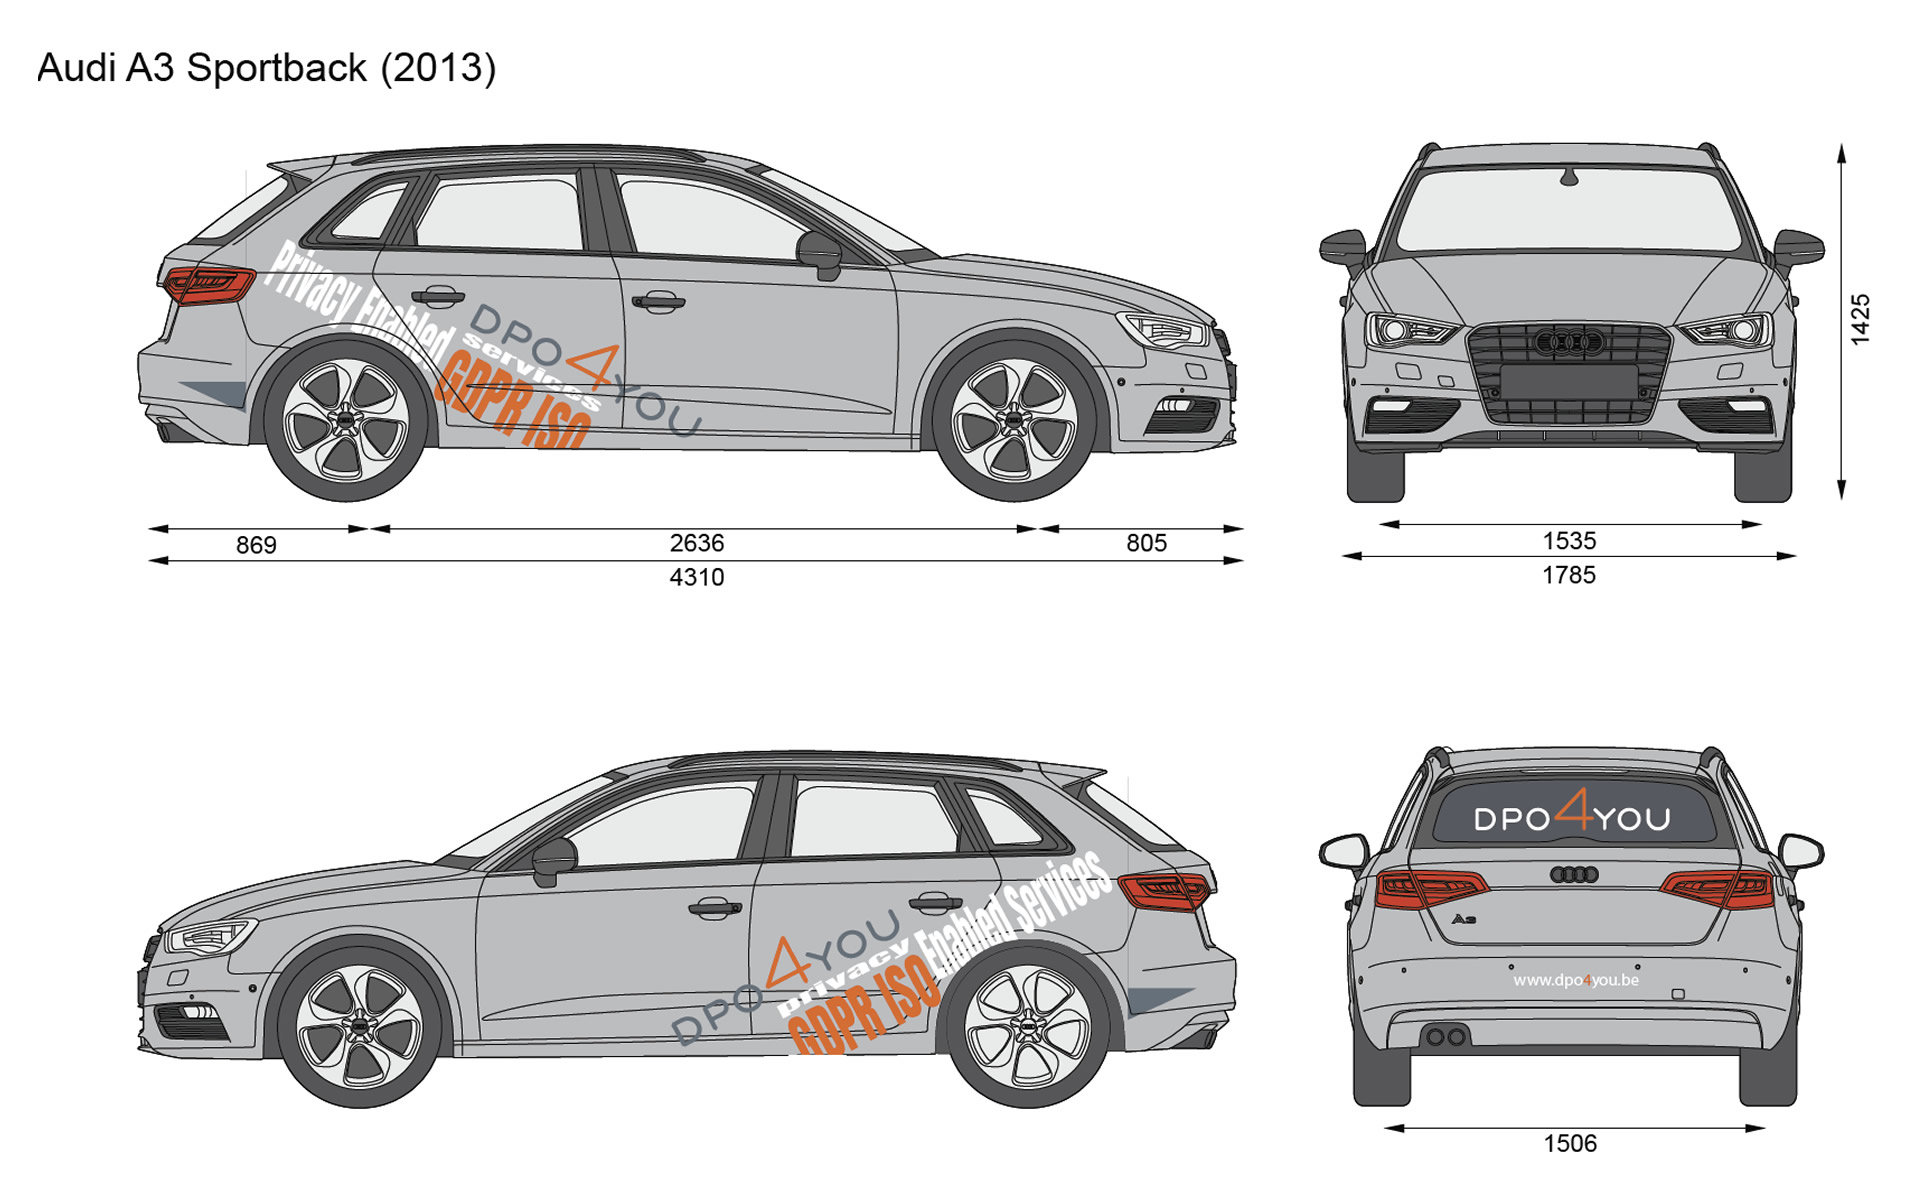 Audi A3 Sportback - MDG Creativity by MDG Promotions bv - dpo4you - The sign